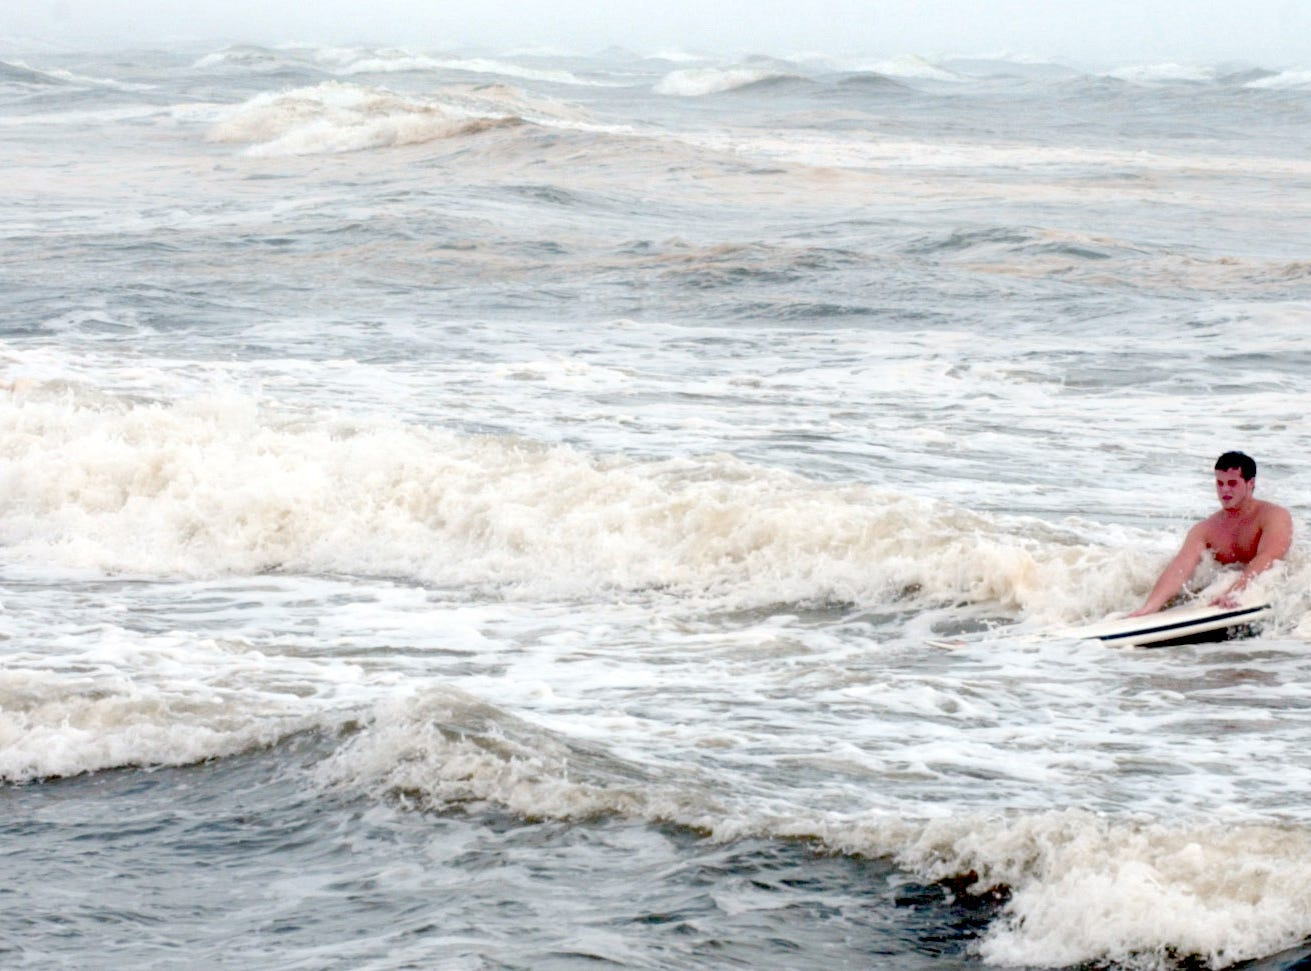 Will Shields of Houston makes his way back to shore through the rough surf near the Packery Channel north jetty in Corpuys Christi after surfing Monday, October 16, 2006.